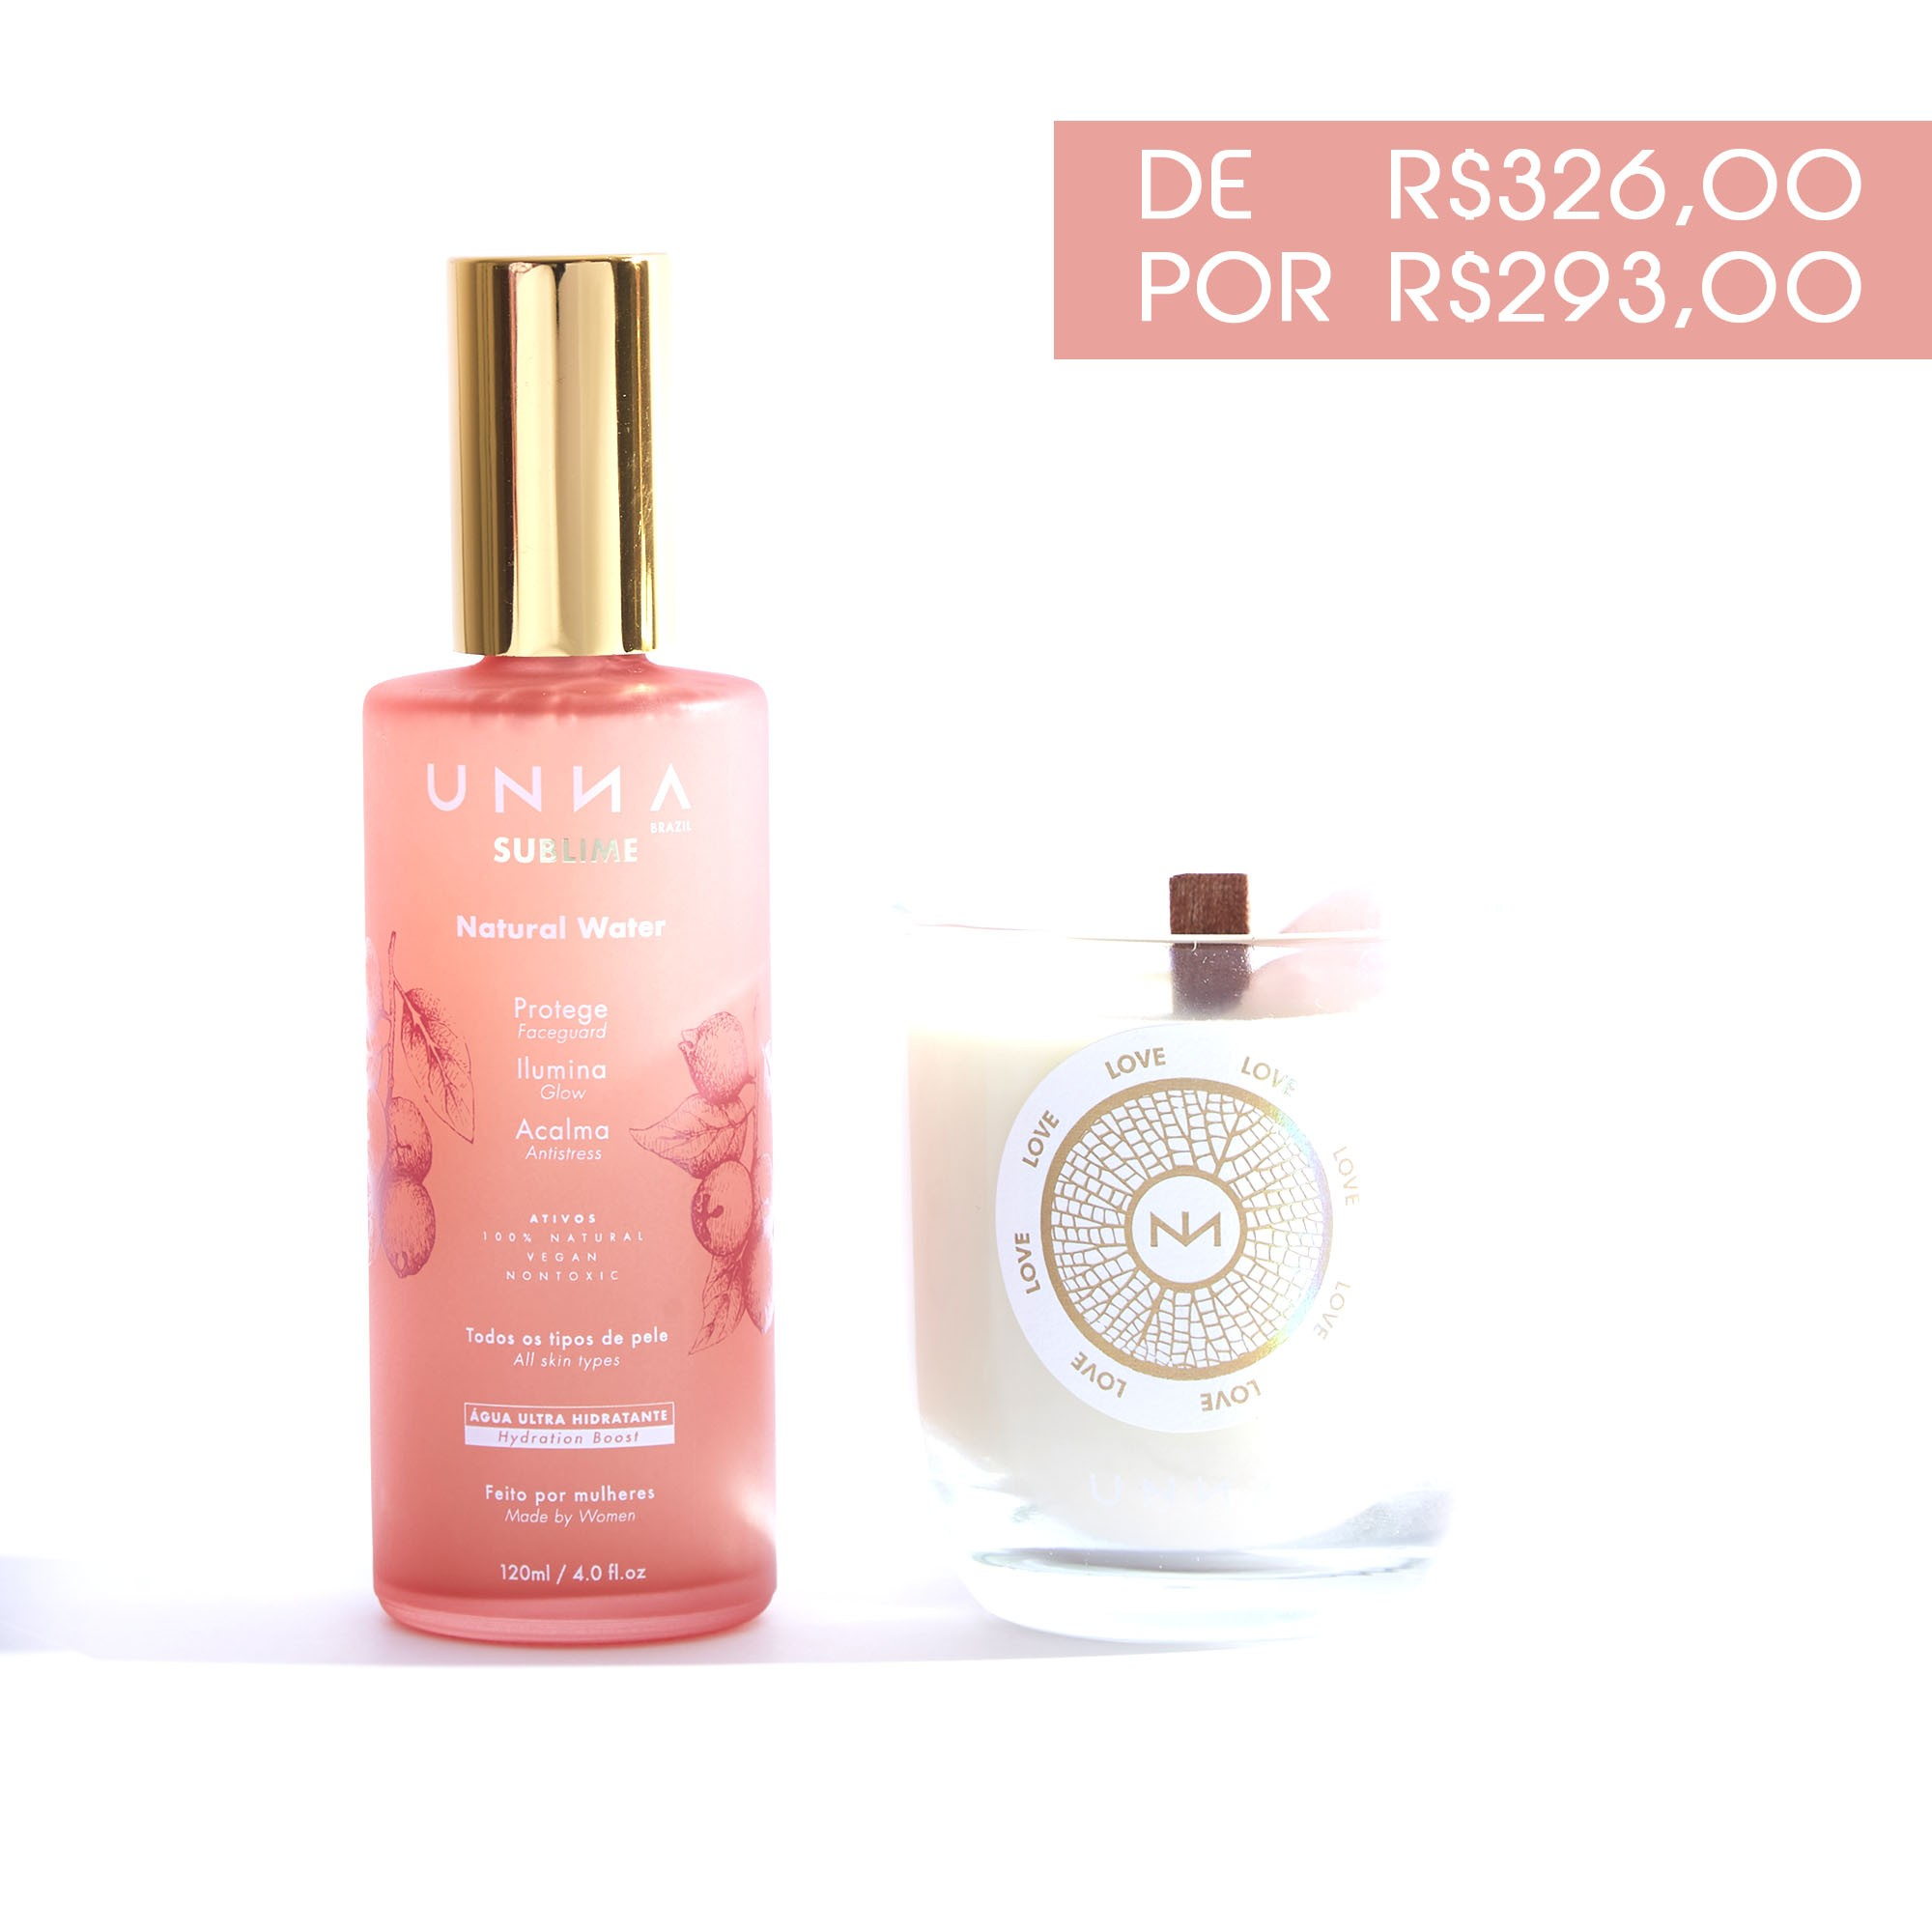 RITUAL ÁGUA SUBLIME 120ML E VELA LOVE